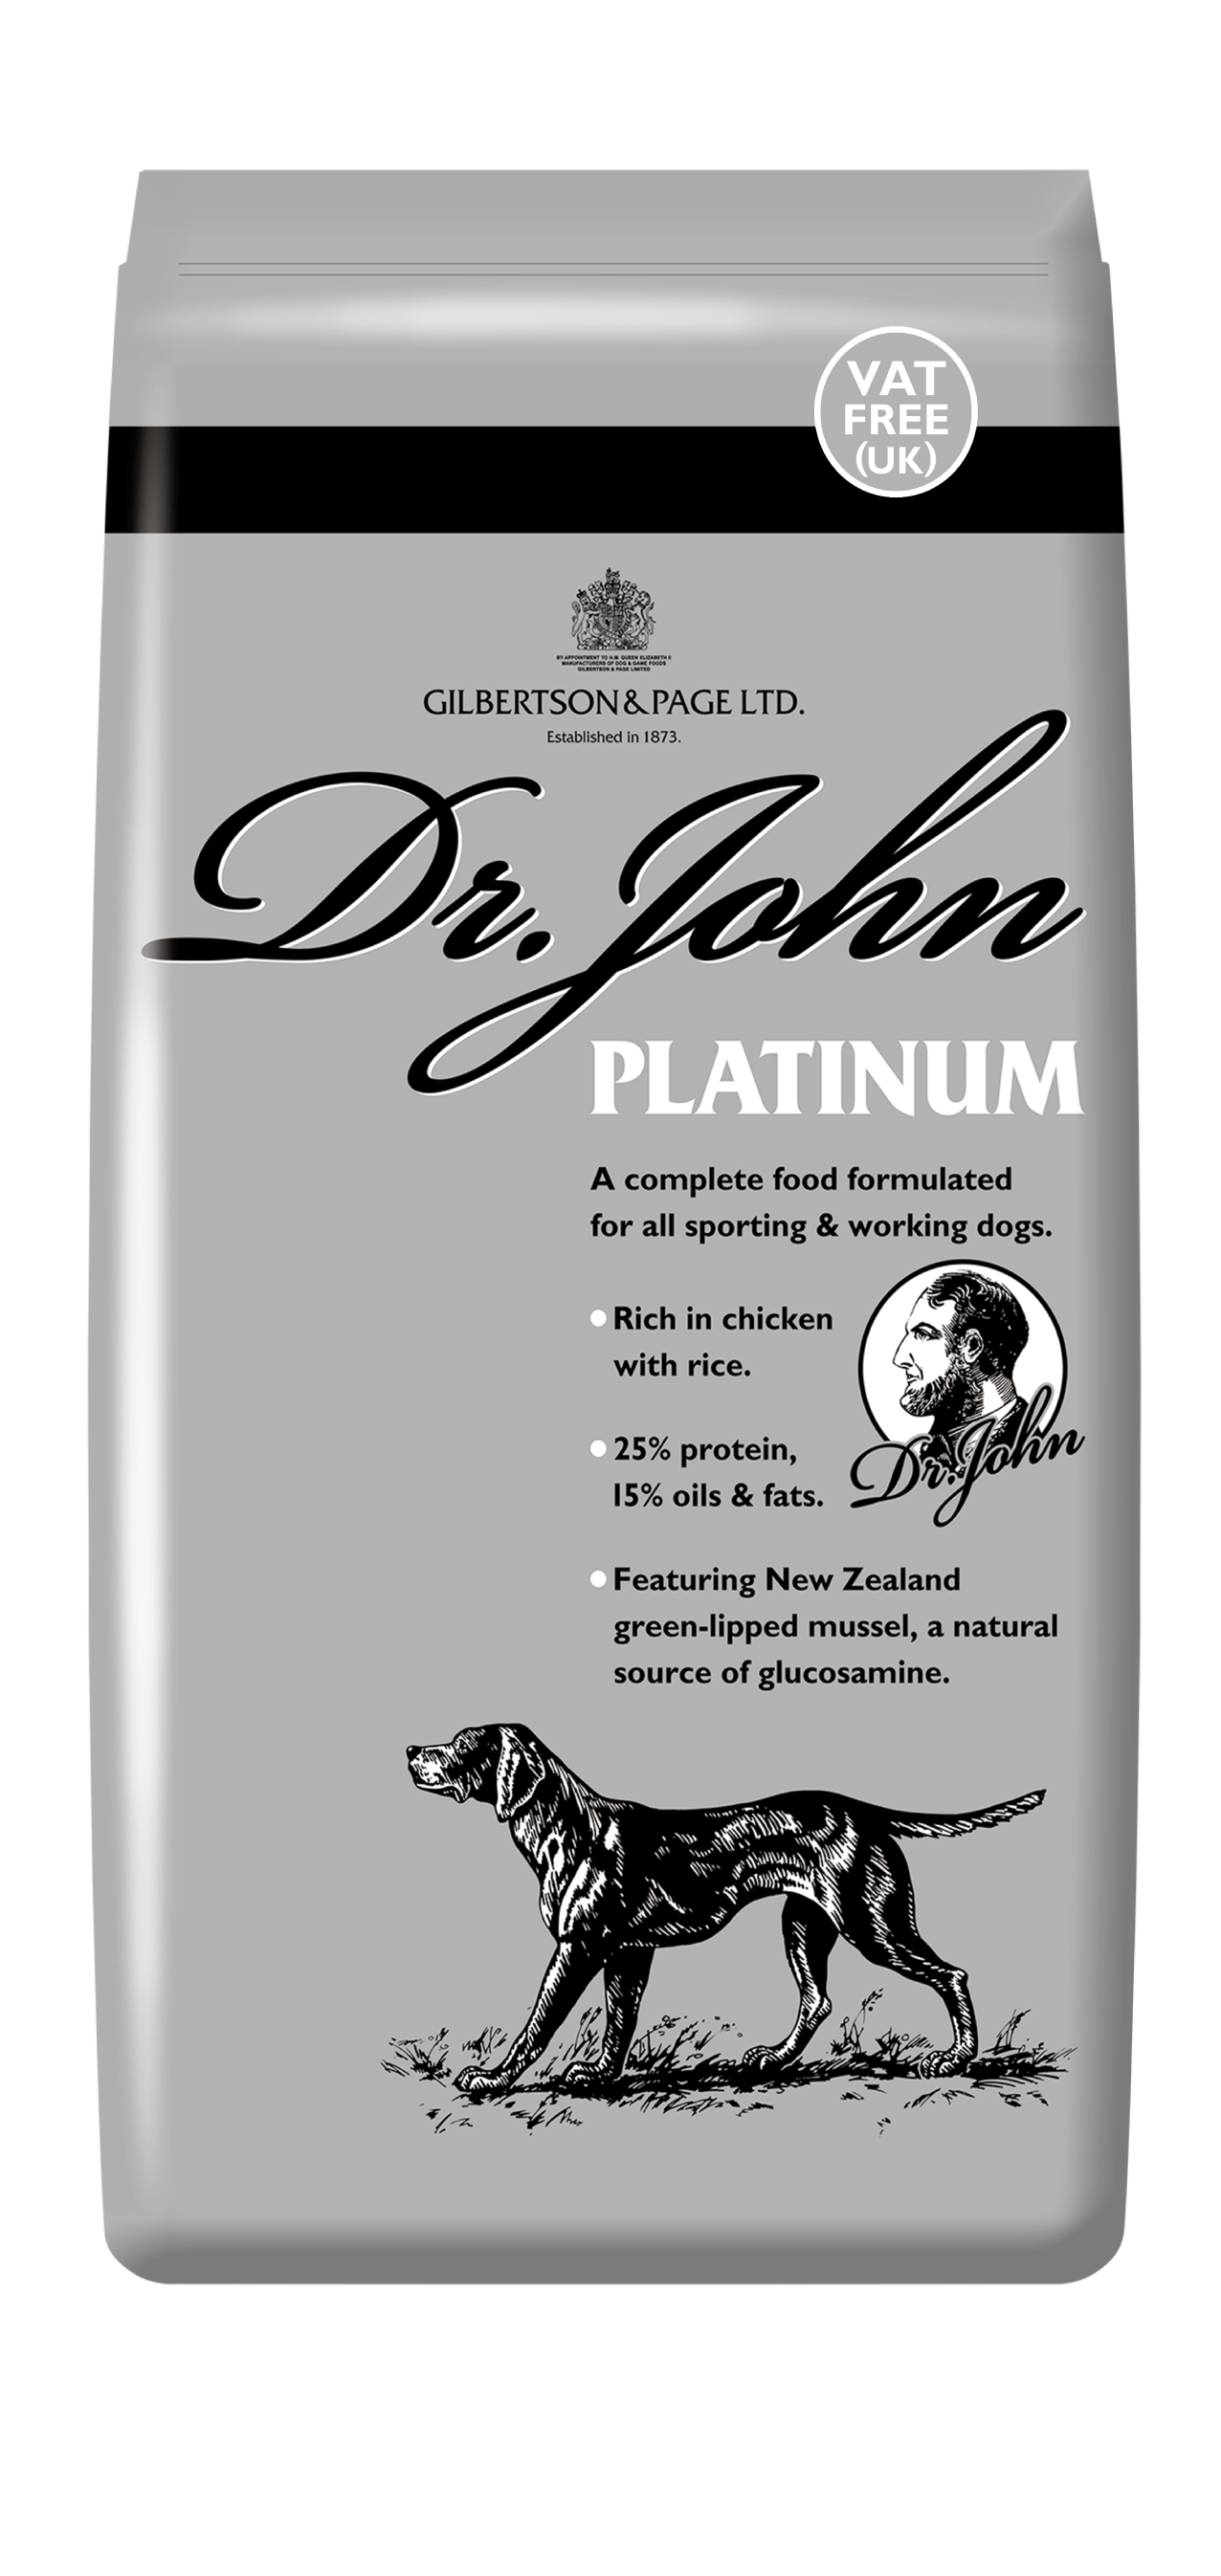 Dr John Platinum Dog Food